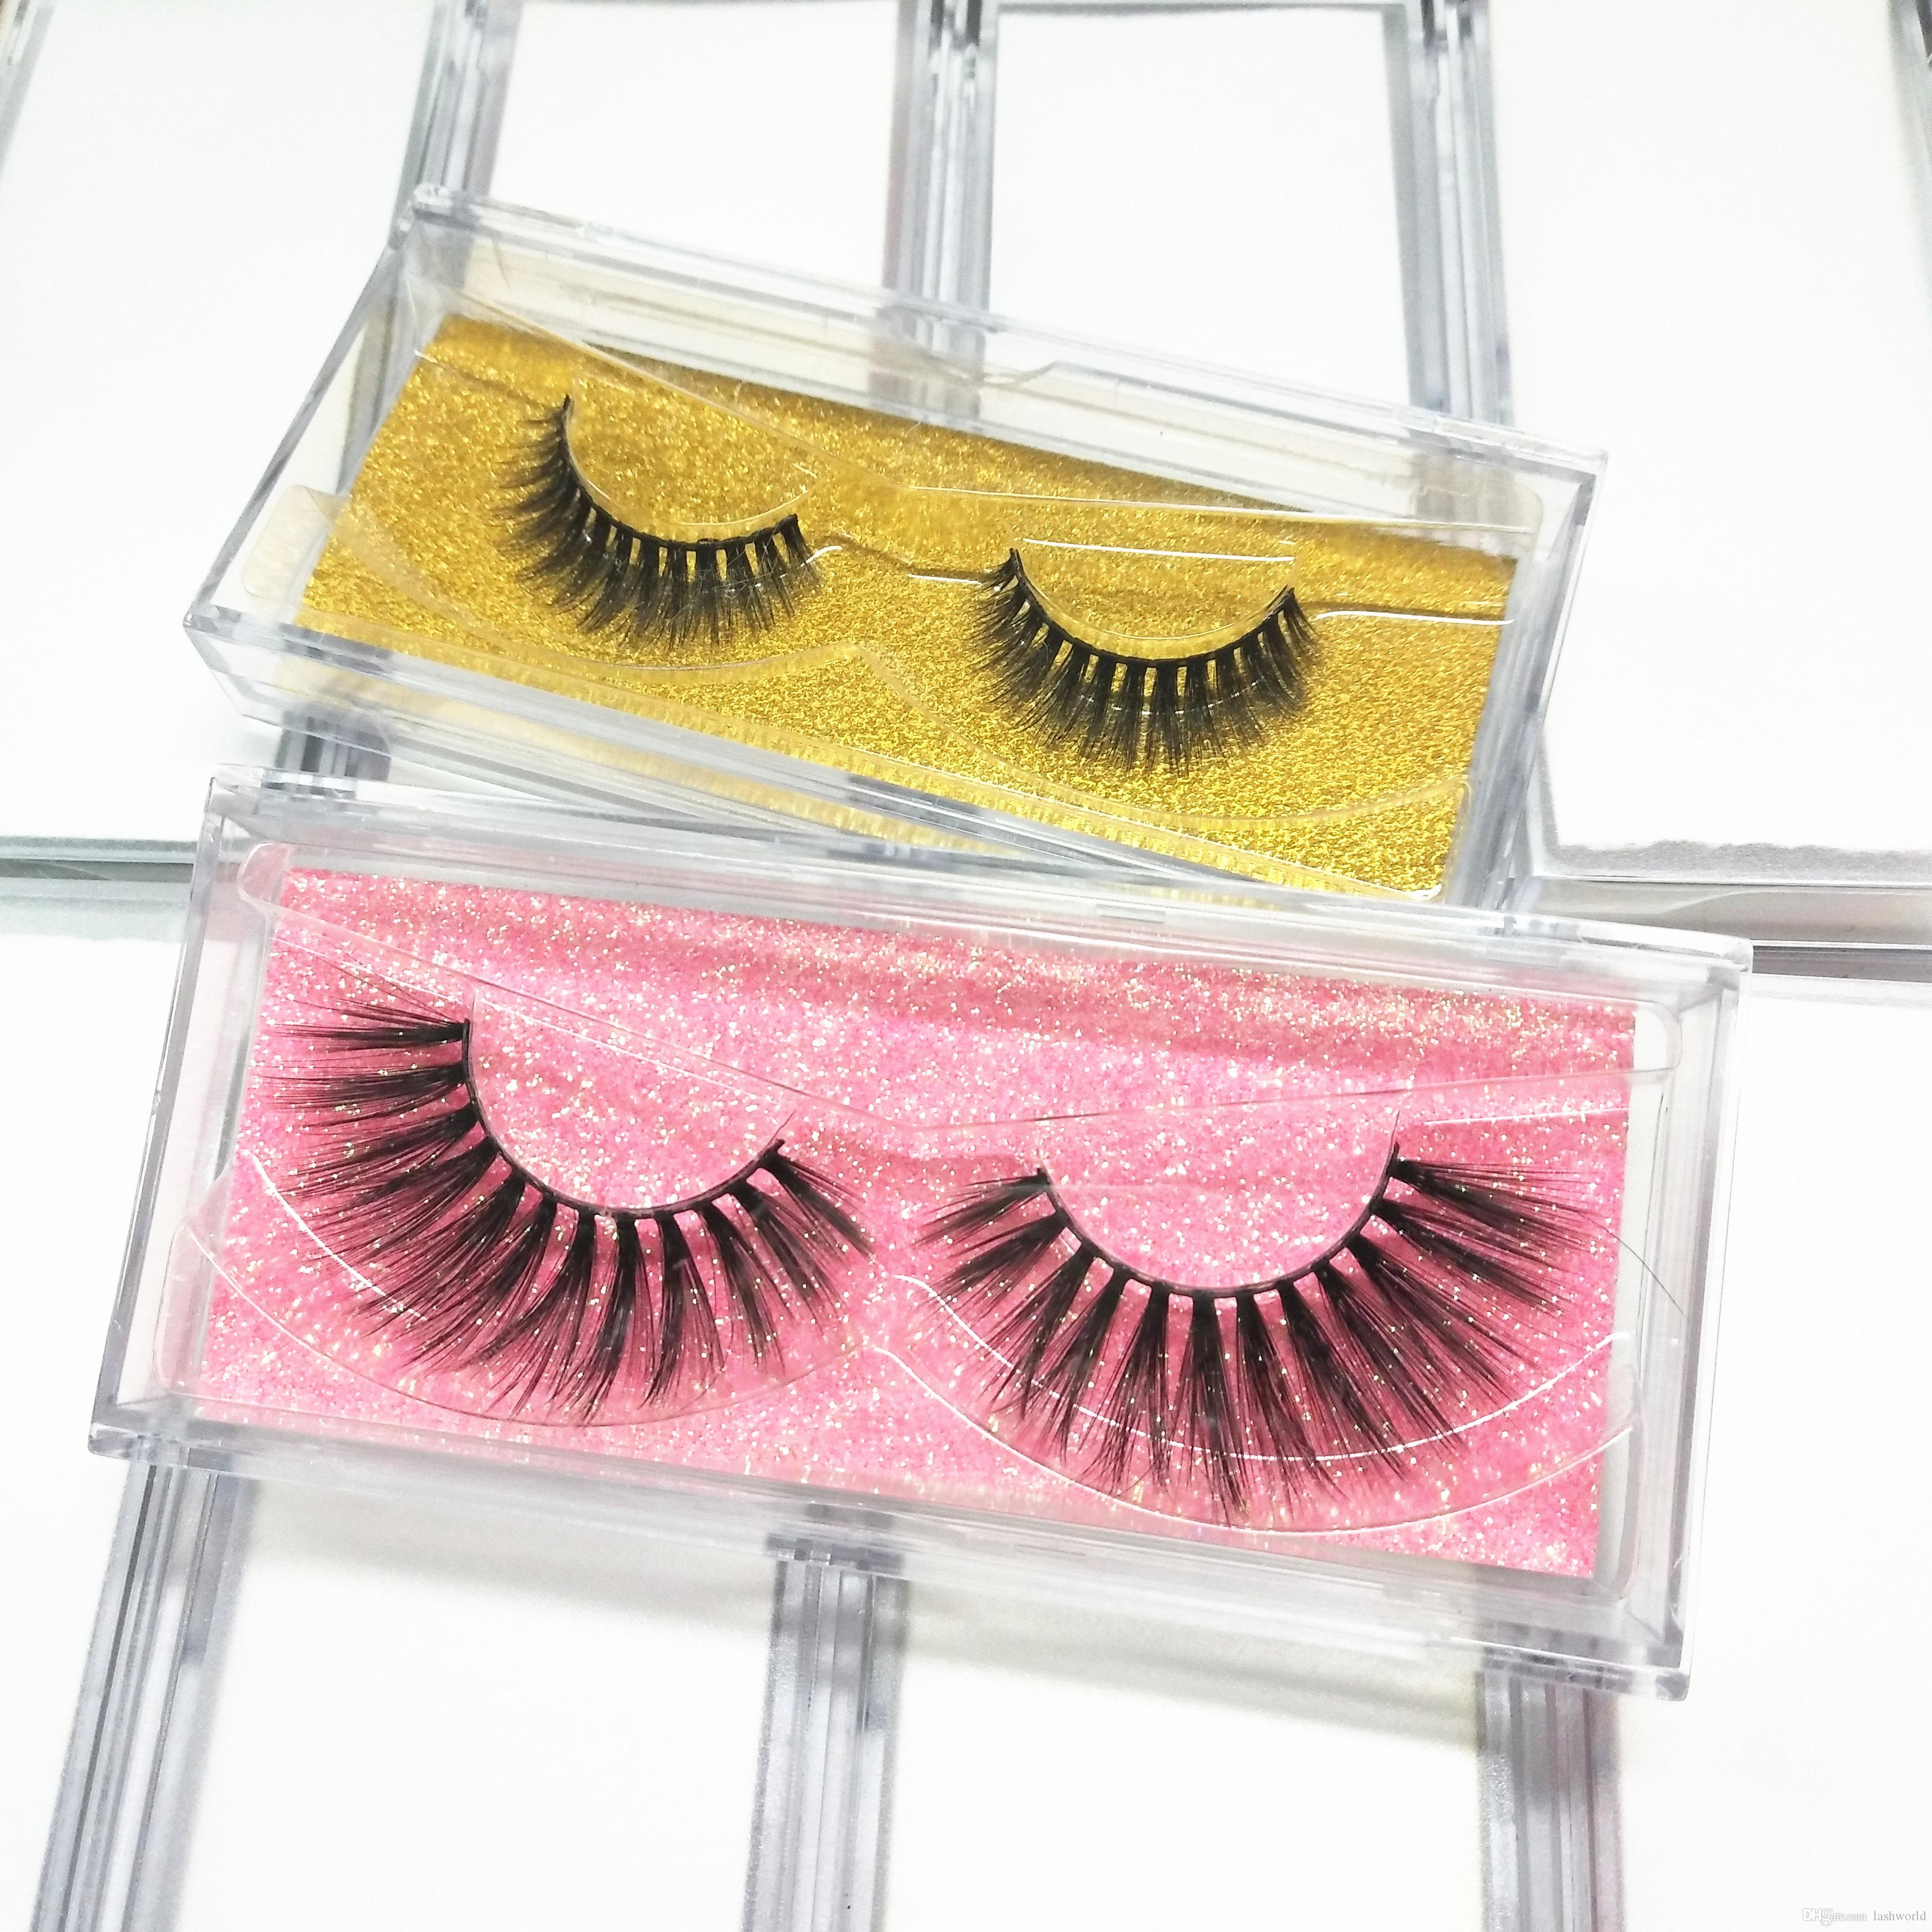 414f9367f23 Seashine 3D Faux Mink Eyelashes With Colorful Plastic Box Christmas Gift  Professional Makeup Lashes Handmade Color Mink Lashes Feather Eyelashes How  To ...